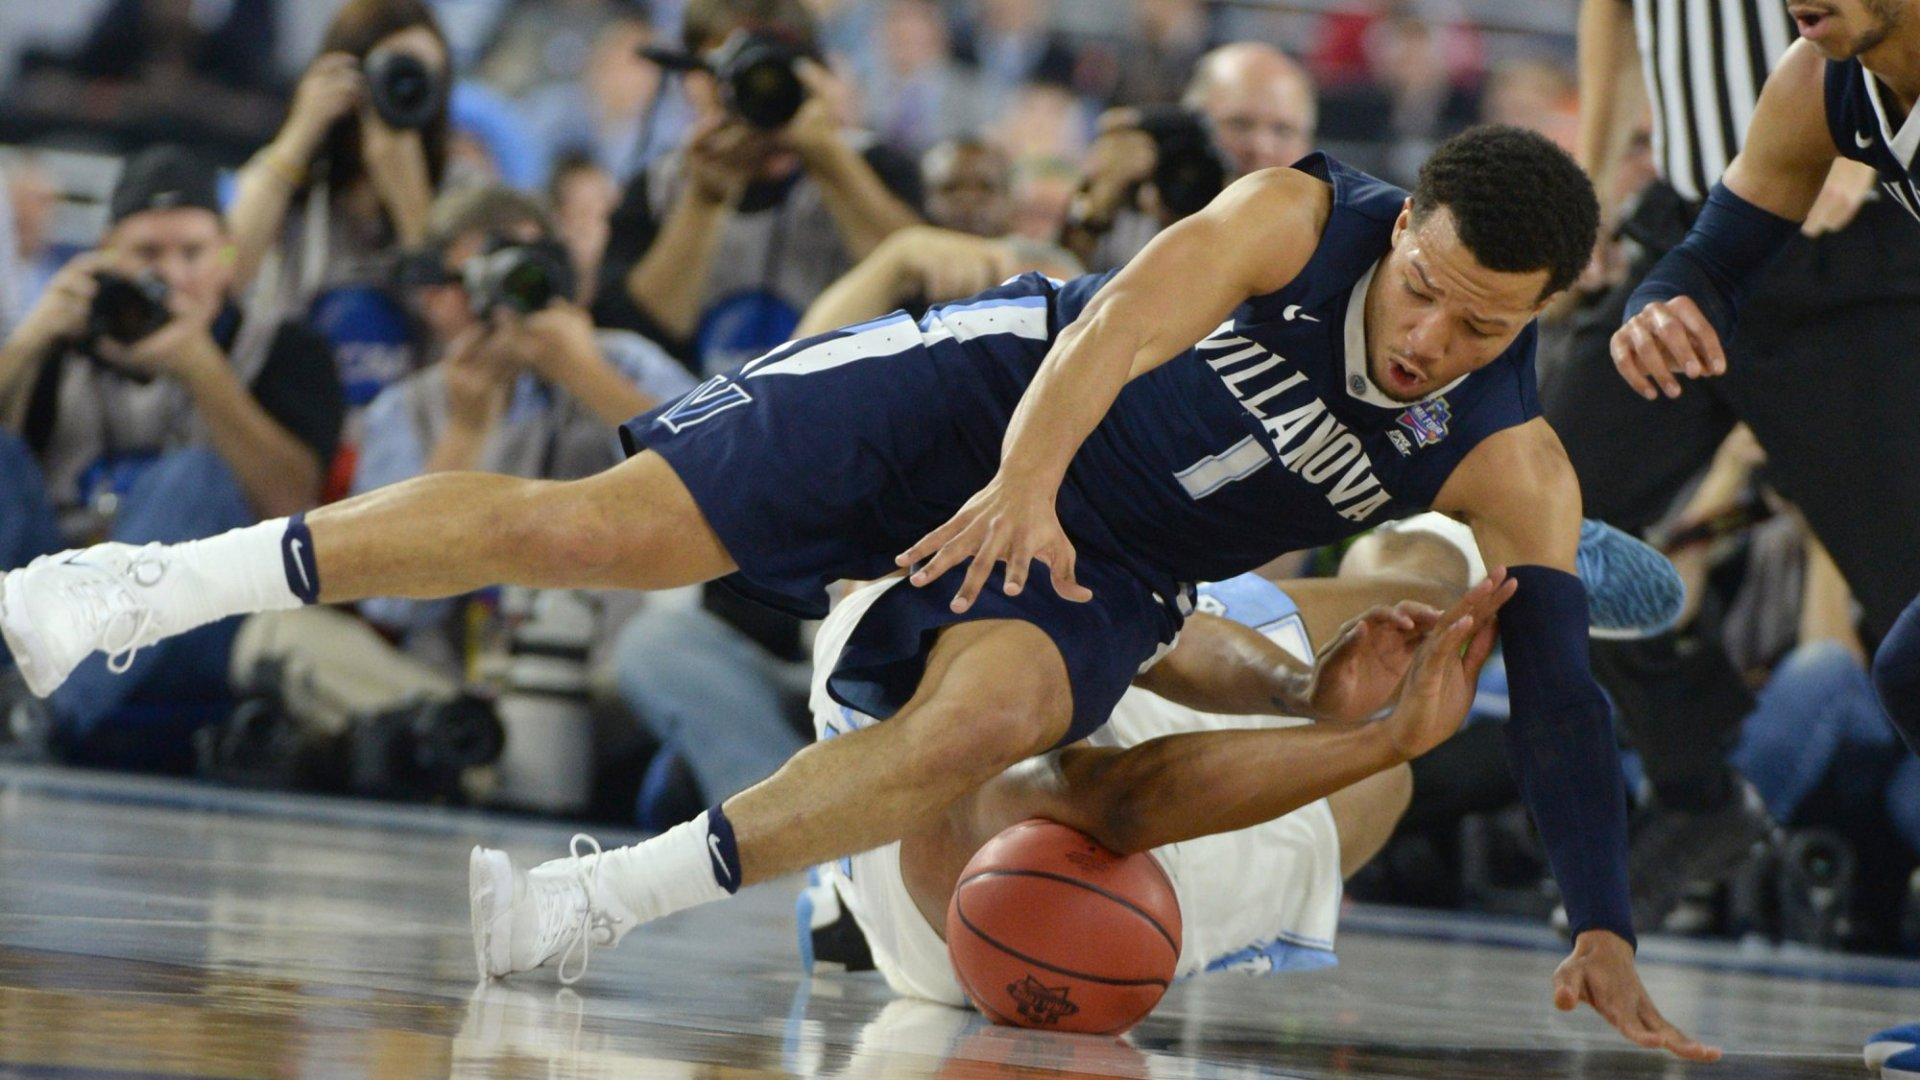 4 Business Lessons From Last Night's Amazing NCAA Basketball Championship Game